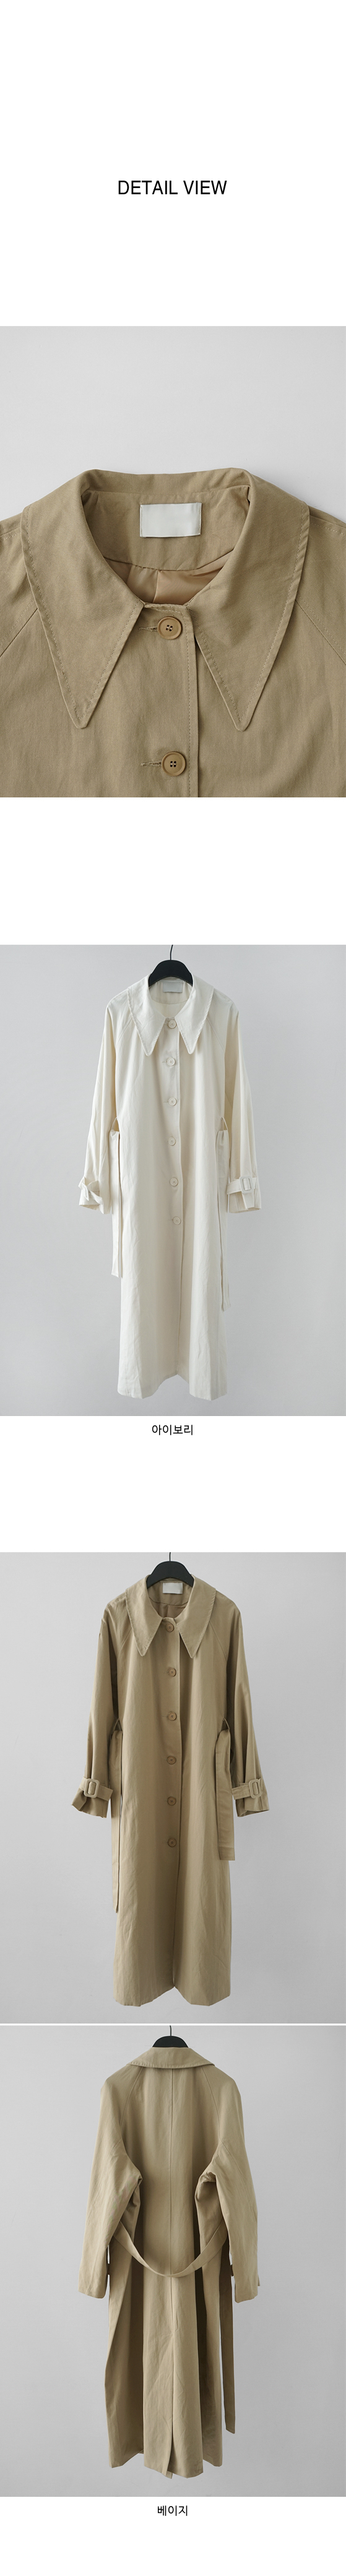 wide collar trench coat